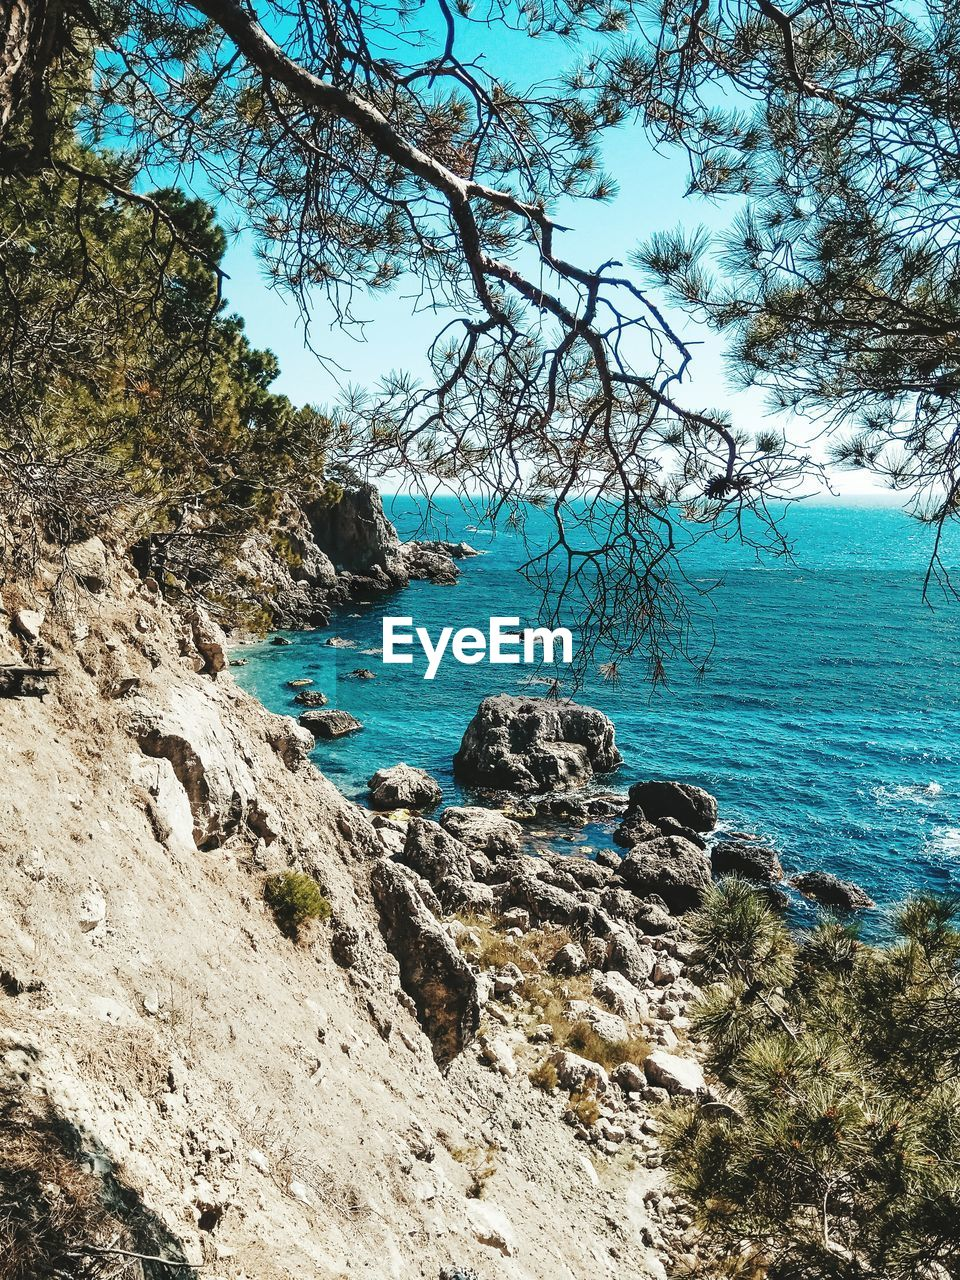 tree, plant, water, tranquility, rock, beauty in nature, nature, land, sea, sky, solid, tranquil scene, day, rock - object, scenics - nature, no people, outdoors, branch, non-urban scene, turquoise colored